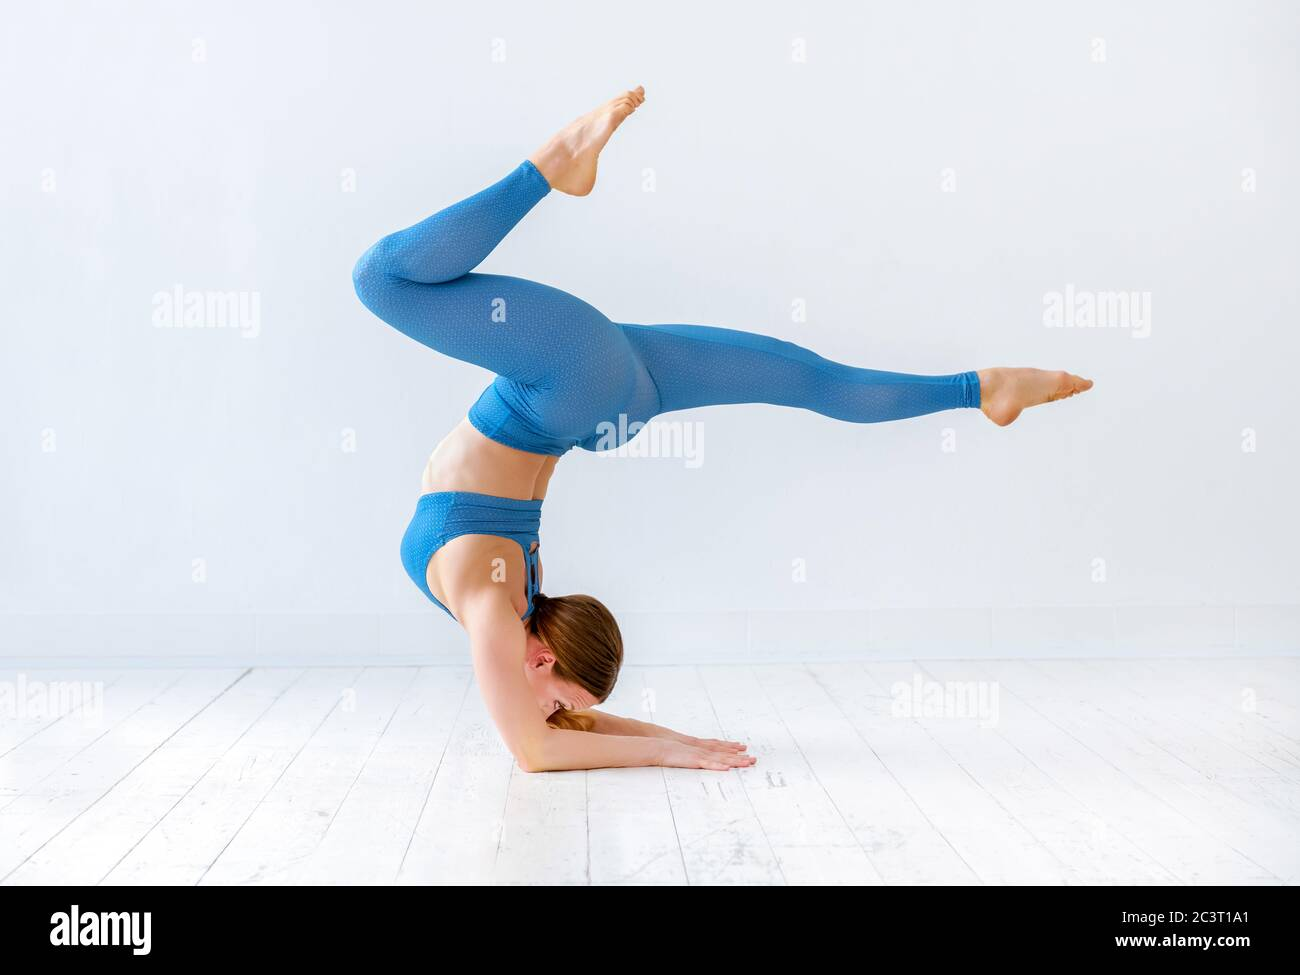 Athletic woman doing an elbow stand yoga pose with outstretched ...